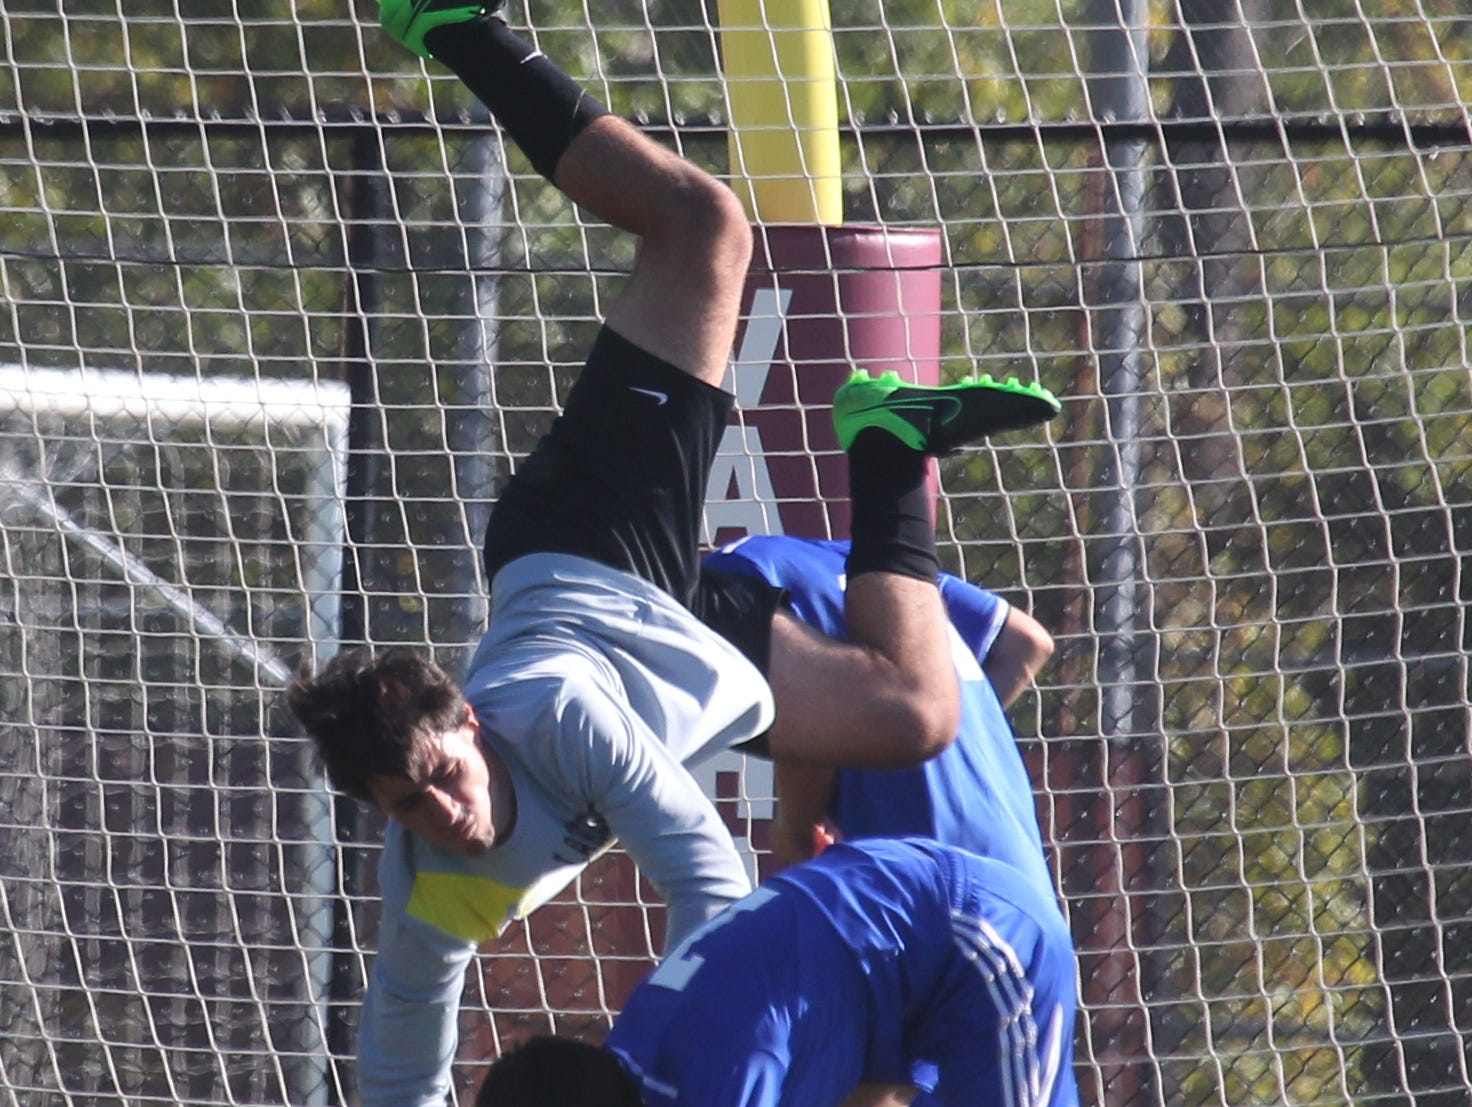 Lakeland goalie Aaron Kreuter is upended as he makes a save against Goshen during their Section 1 vs. Section 9 Challenge game at Valhalla Oct. 12, 2015. Goshen won 2-1 in overtime.